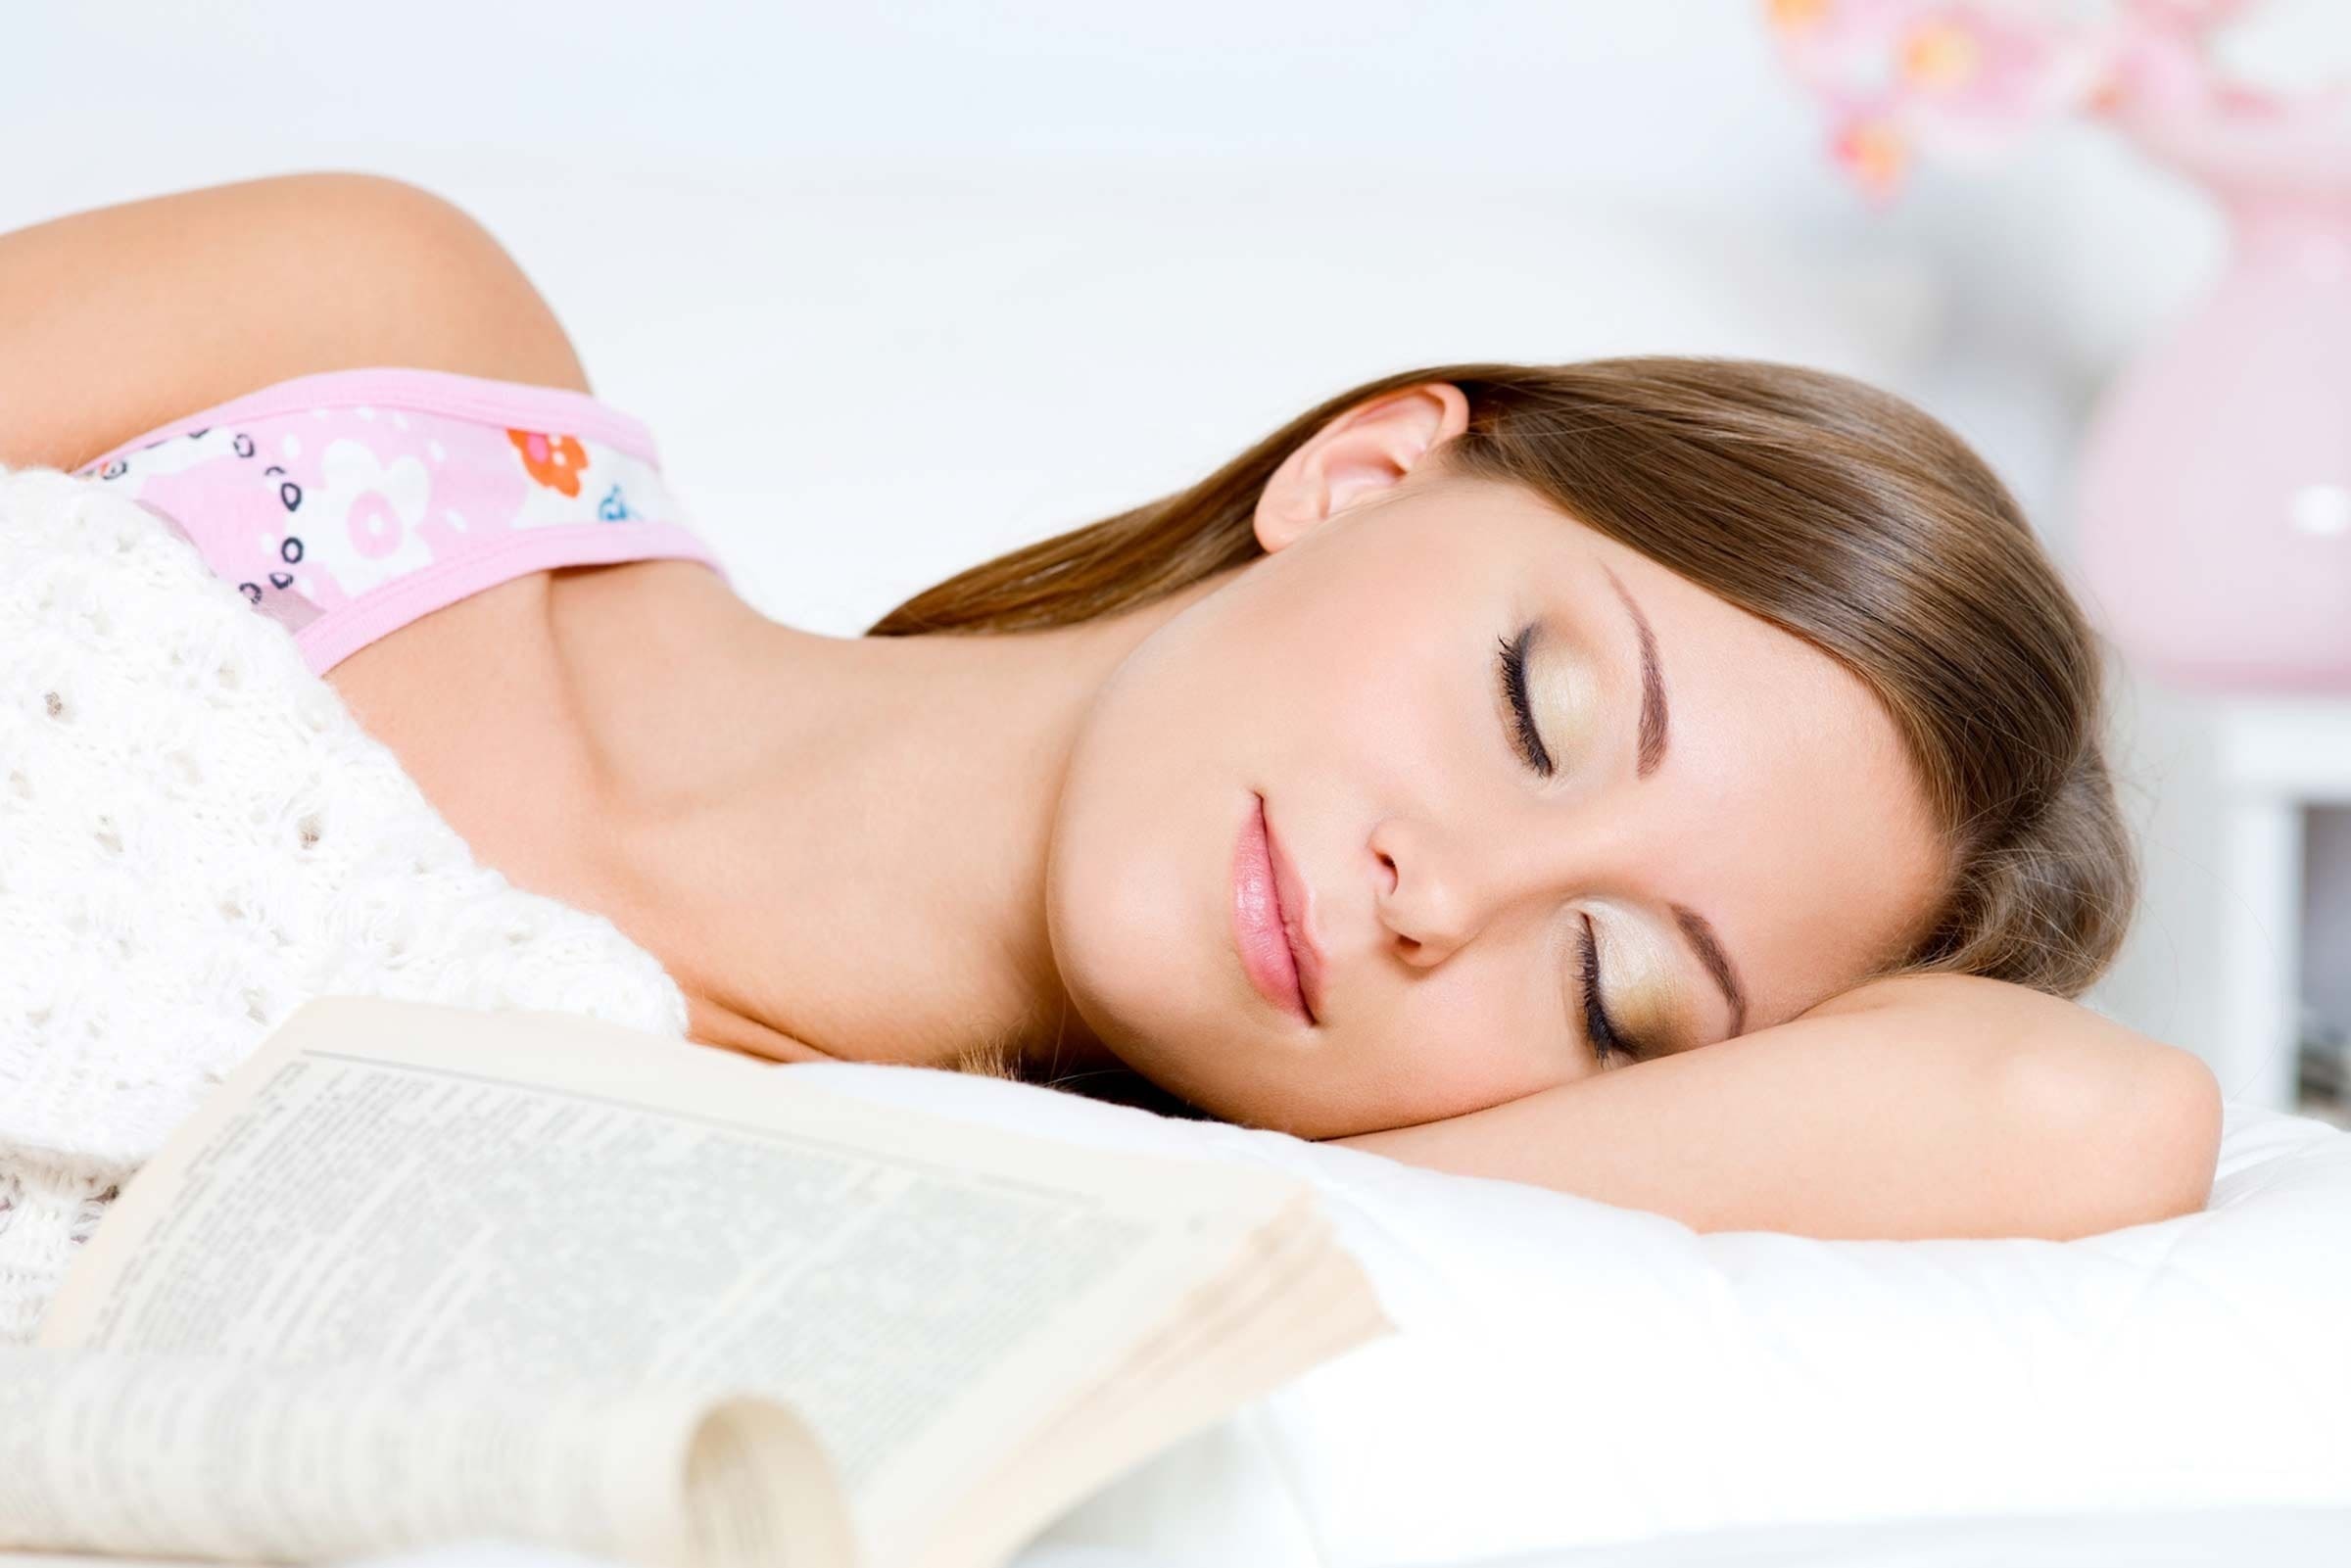 woman asleep, with a book by her side, wearing a full face of makeup.